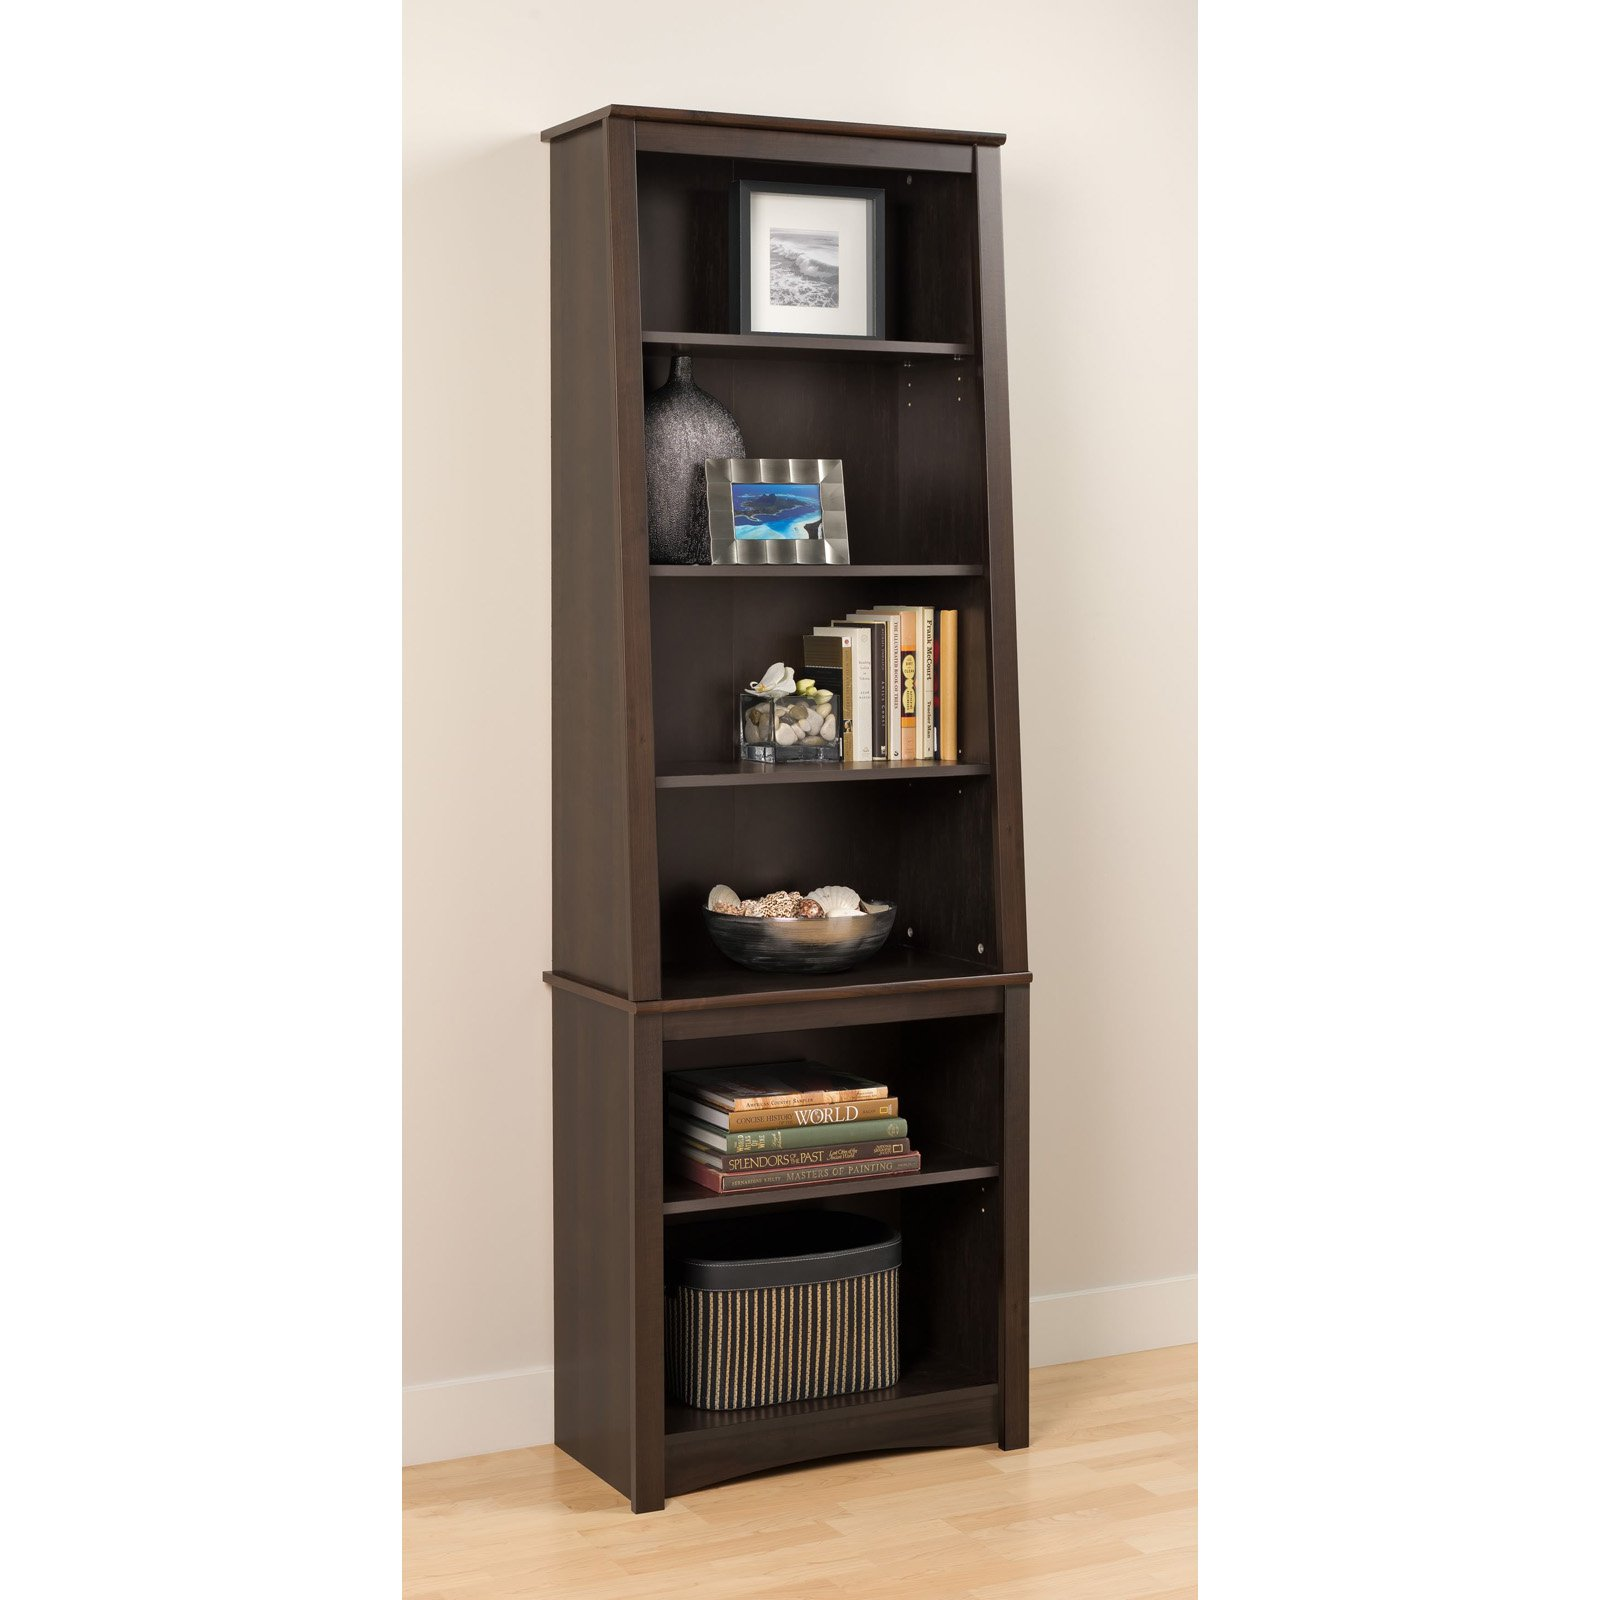 Prepac 6-Shelf Slant Back Bookcase, Espresso by Prepac Manufacturing Ltd